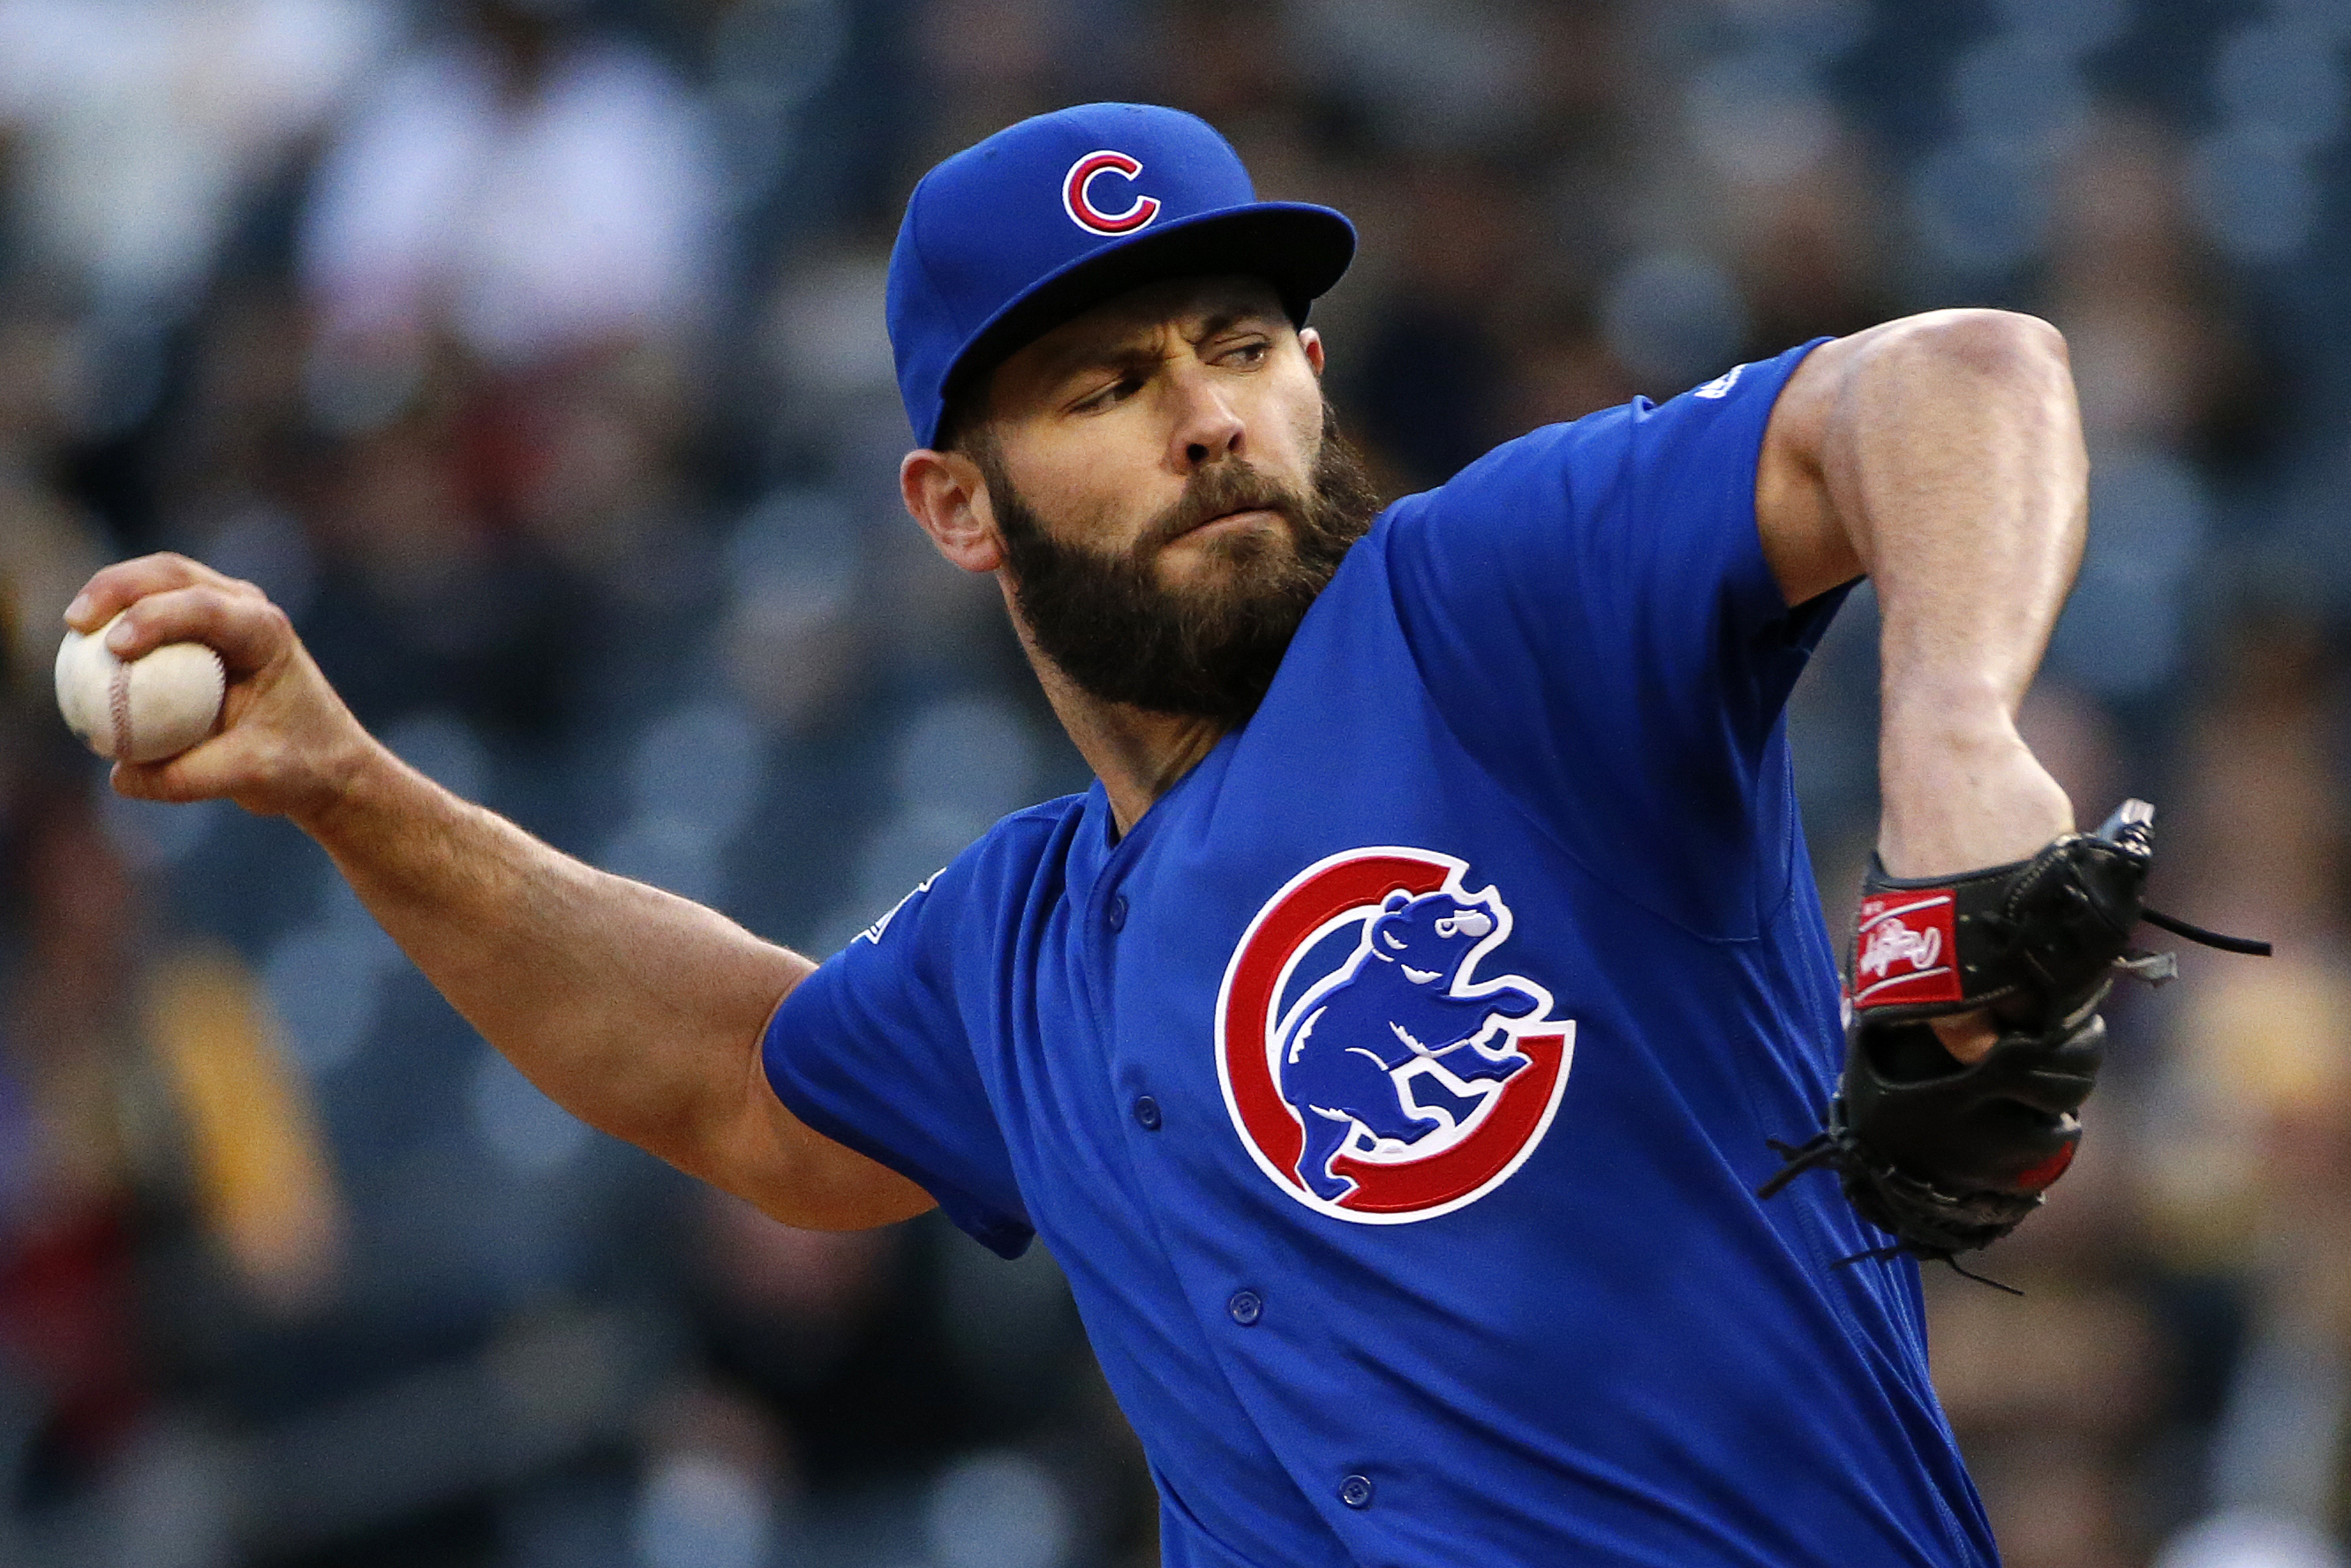 Chicago Cubs starting pitcher Jake Arrieta delivers during the first inning of a baseball game against the Pittsburgh Pirates in Pittsburgh, Tuesday, May 3, 2016. (AP Photo/Gene J. Puskar)